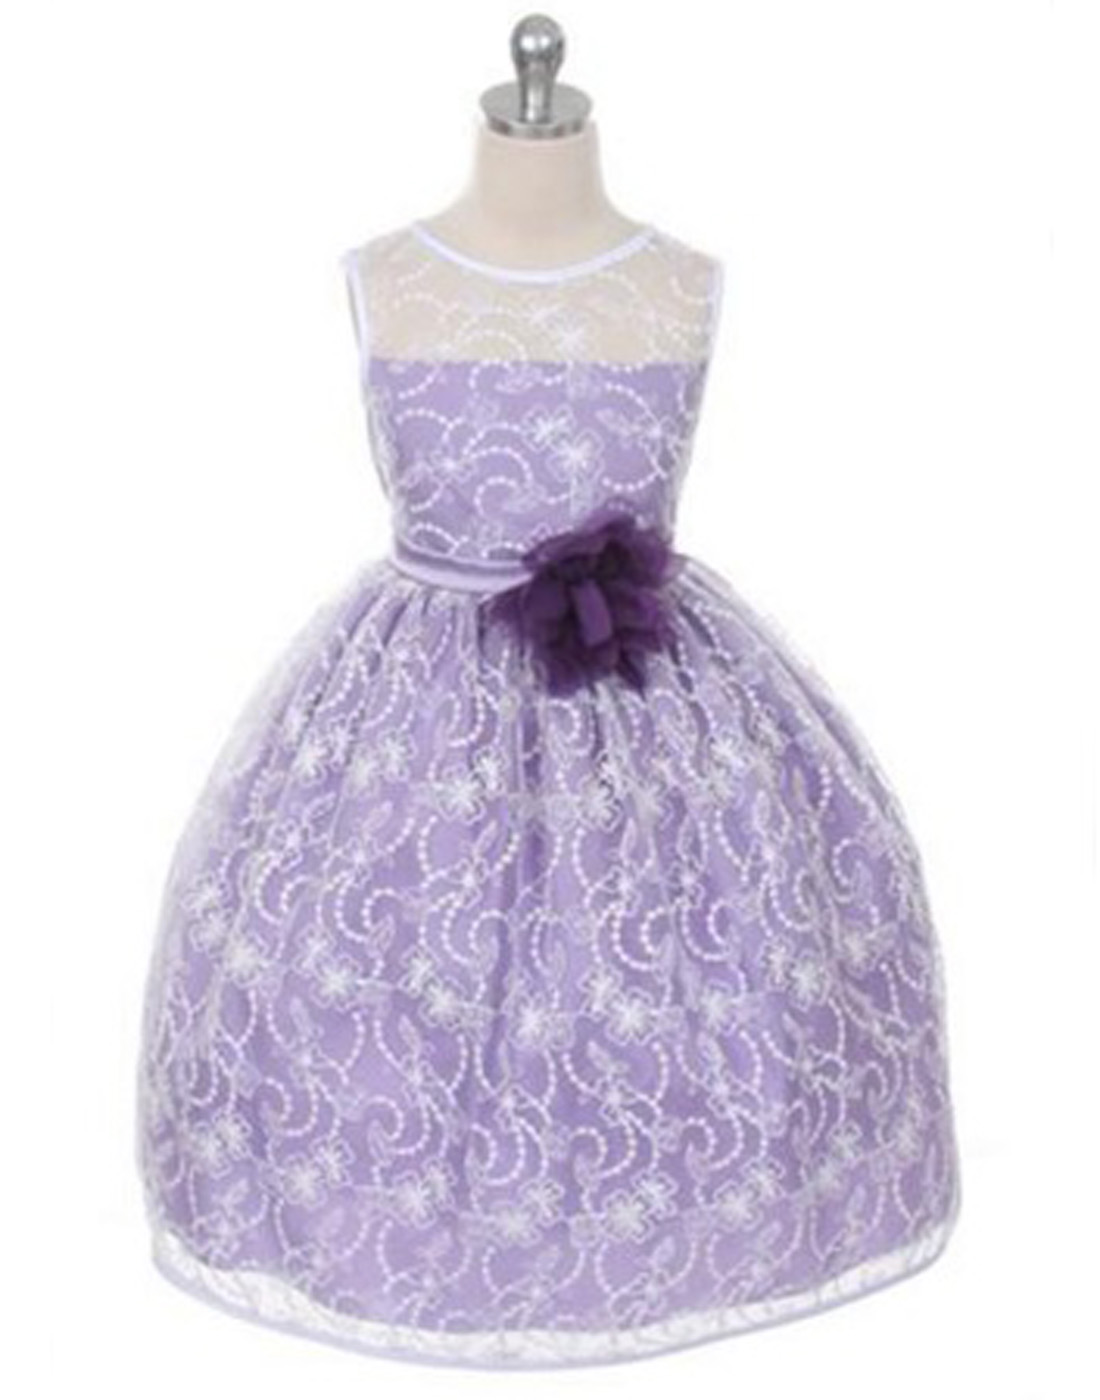 Satin Lining And Floral Overlay Lace Flower Girl Dress Ebay